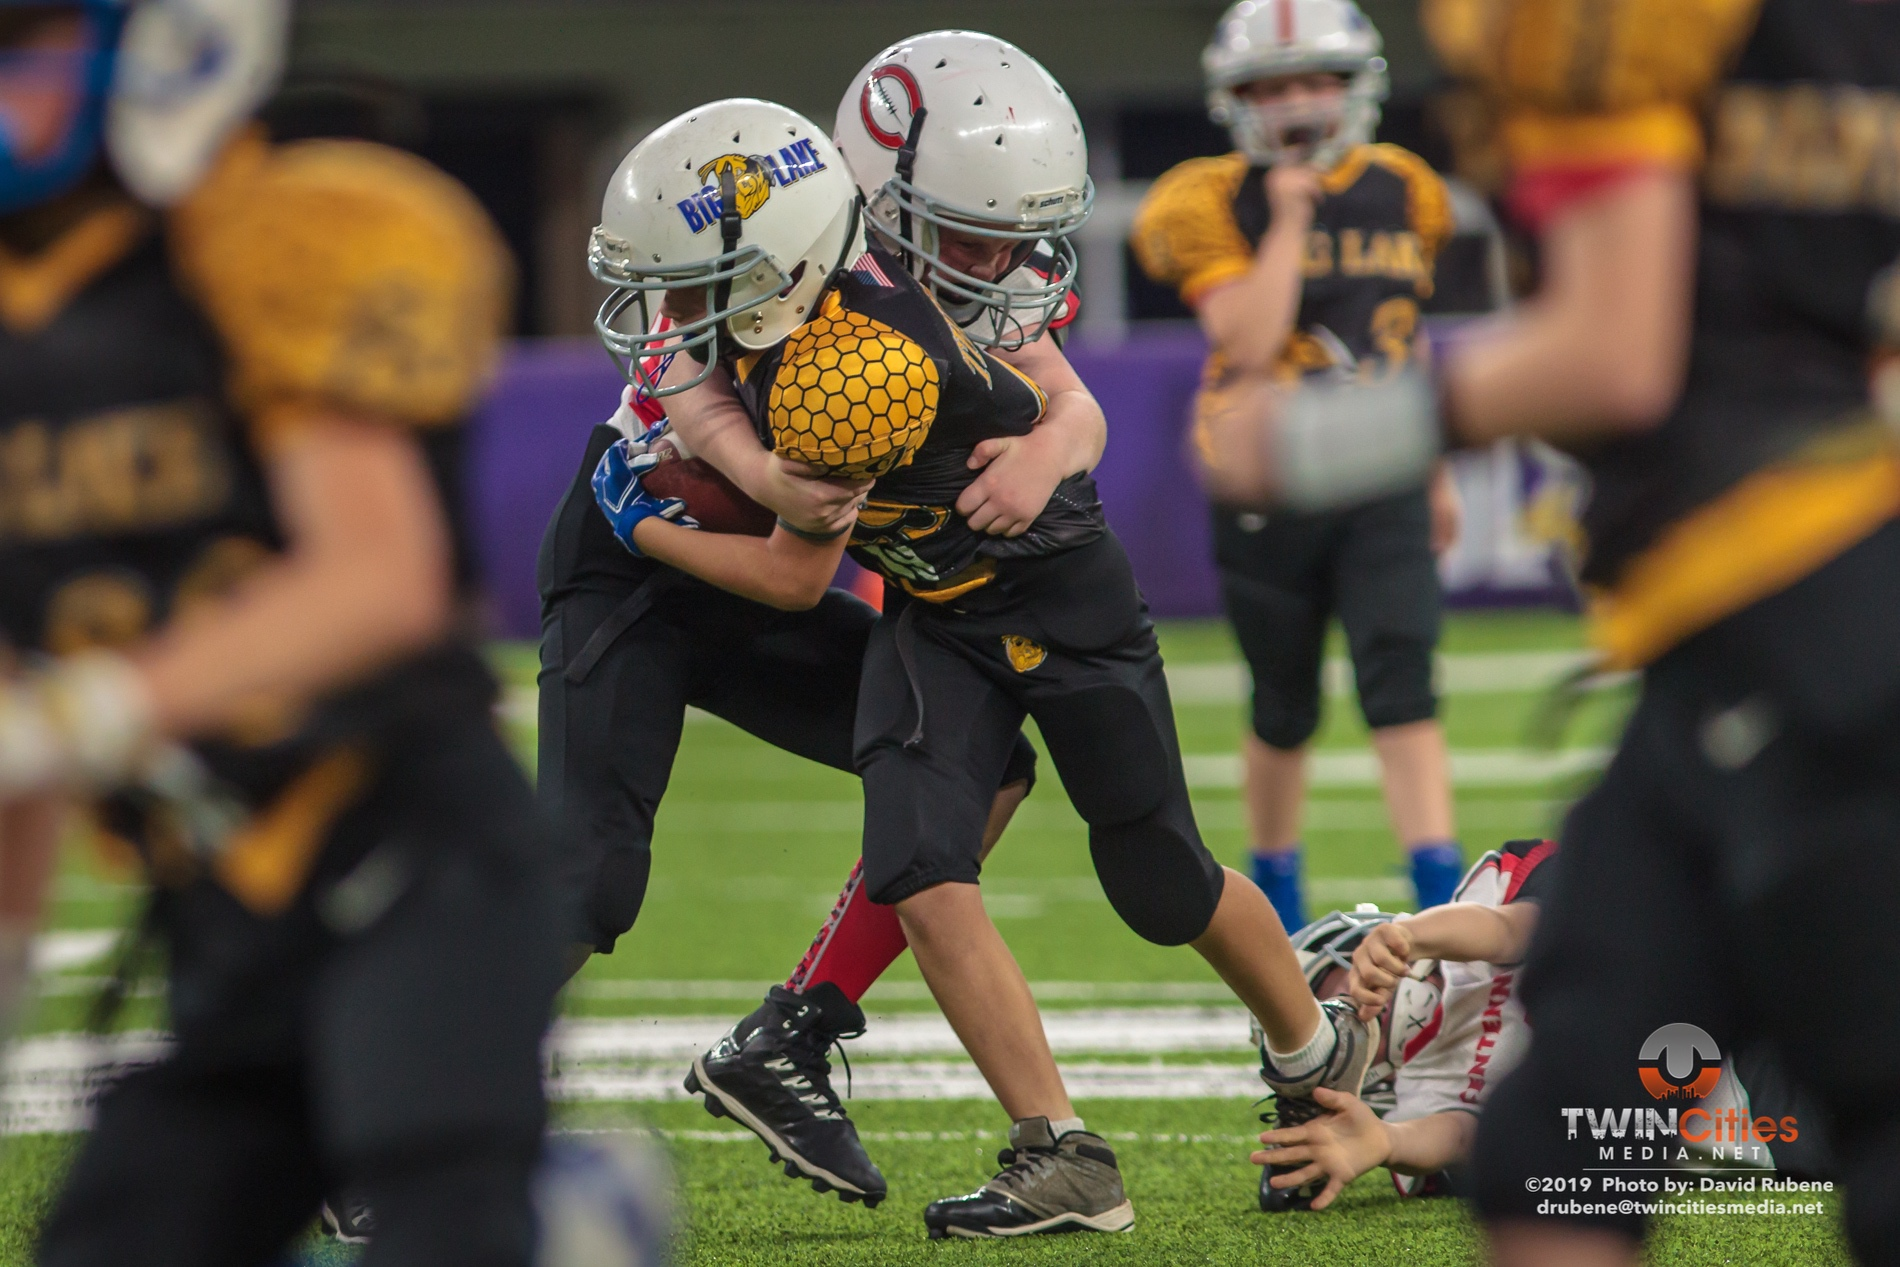 20190924-Centennial-vs-Big-Lake-220